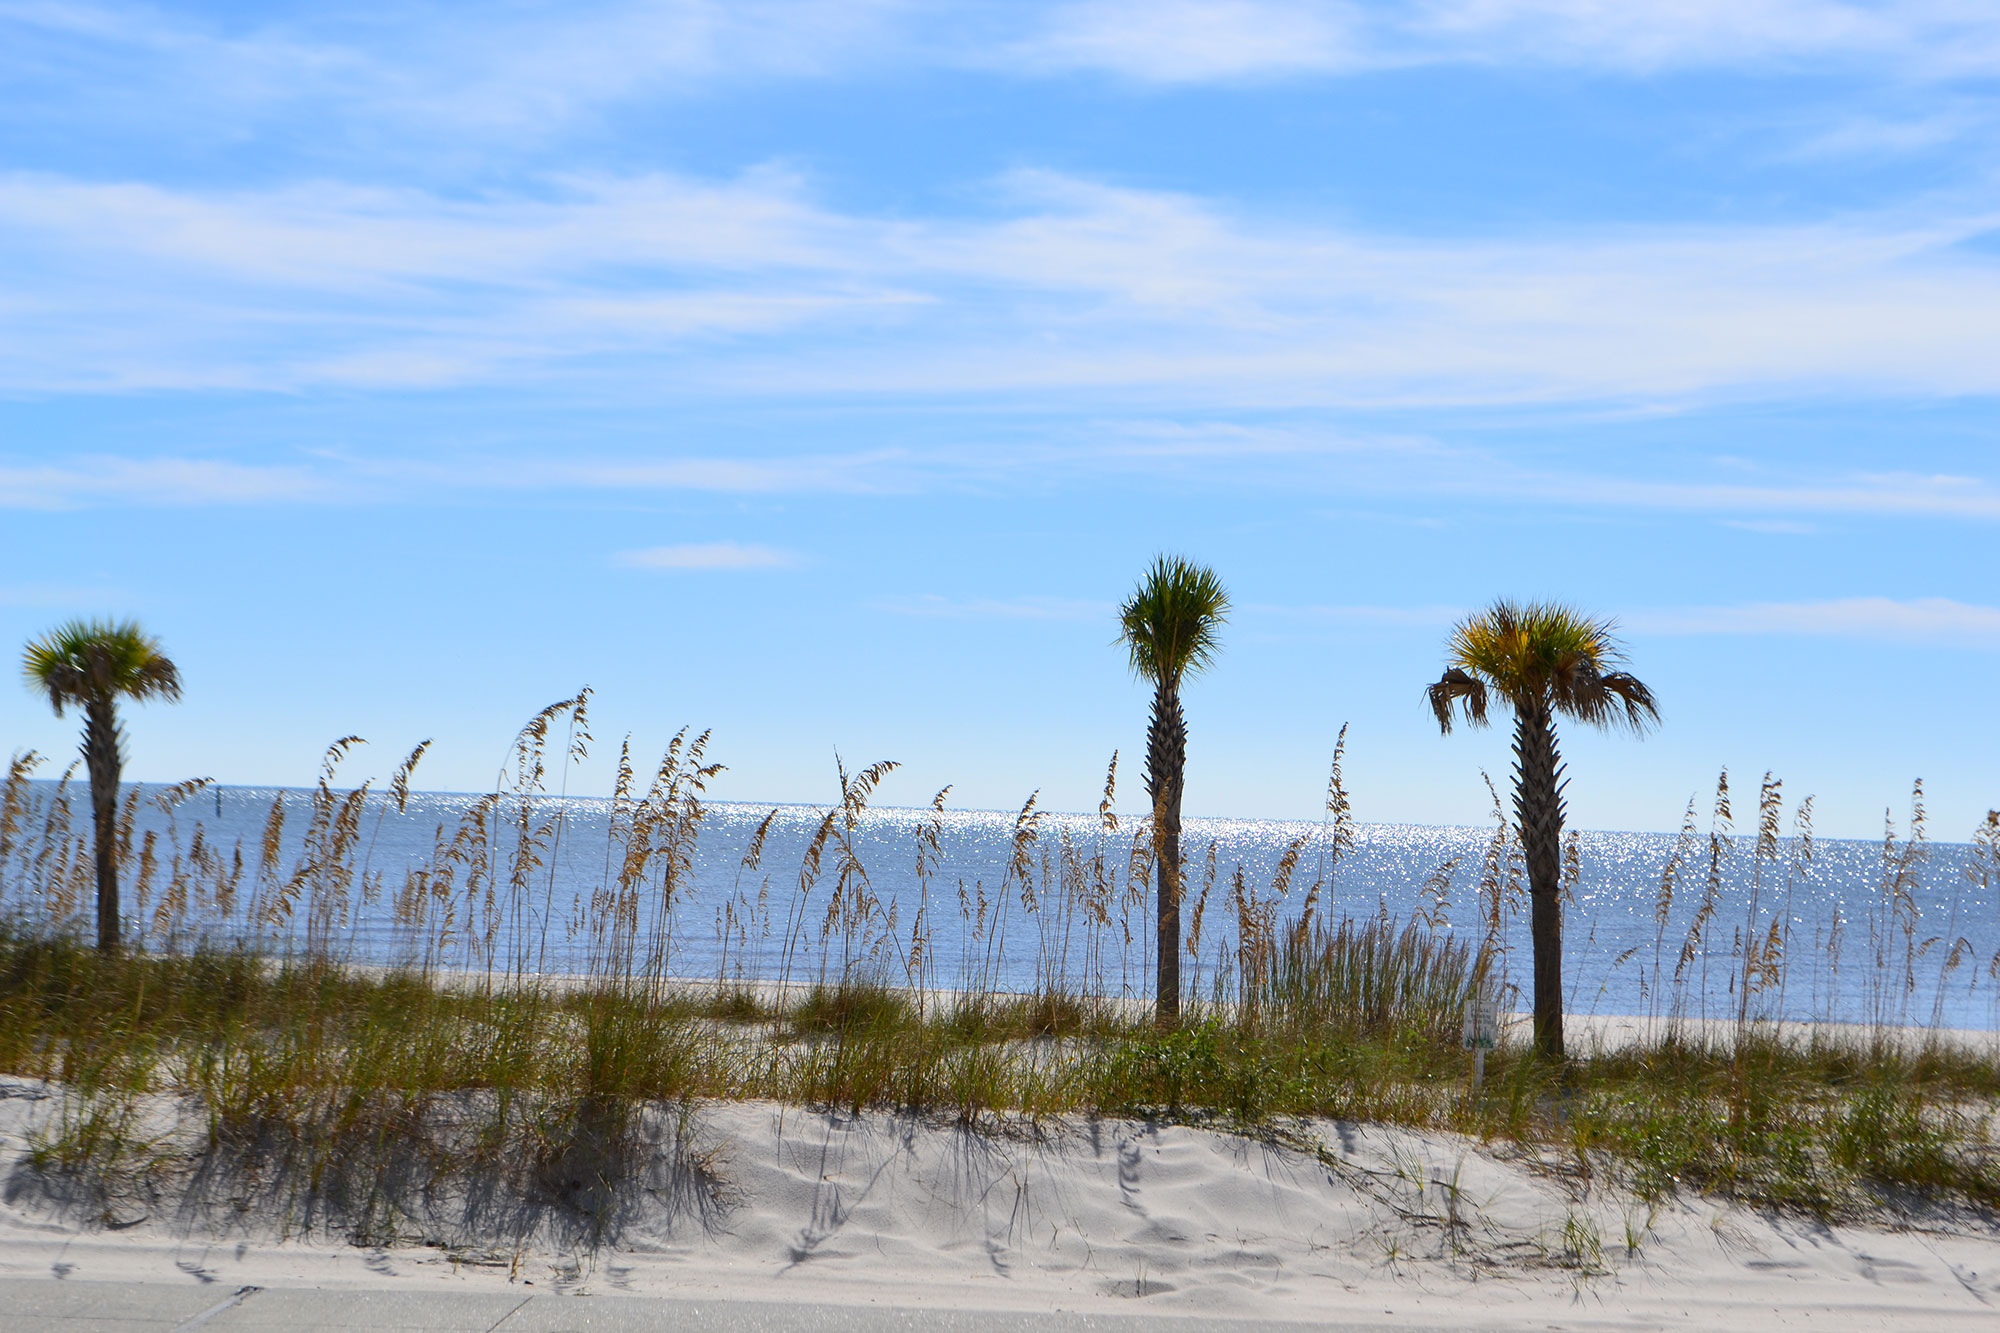 Condos for sale in Long Beach, Mississippi